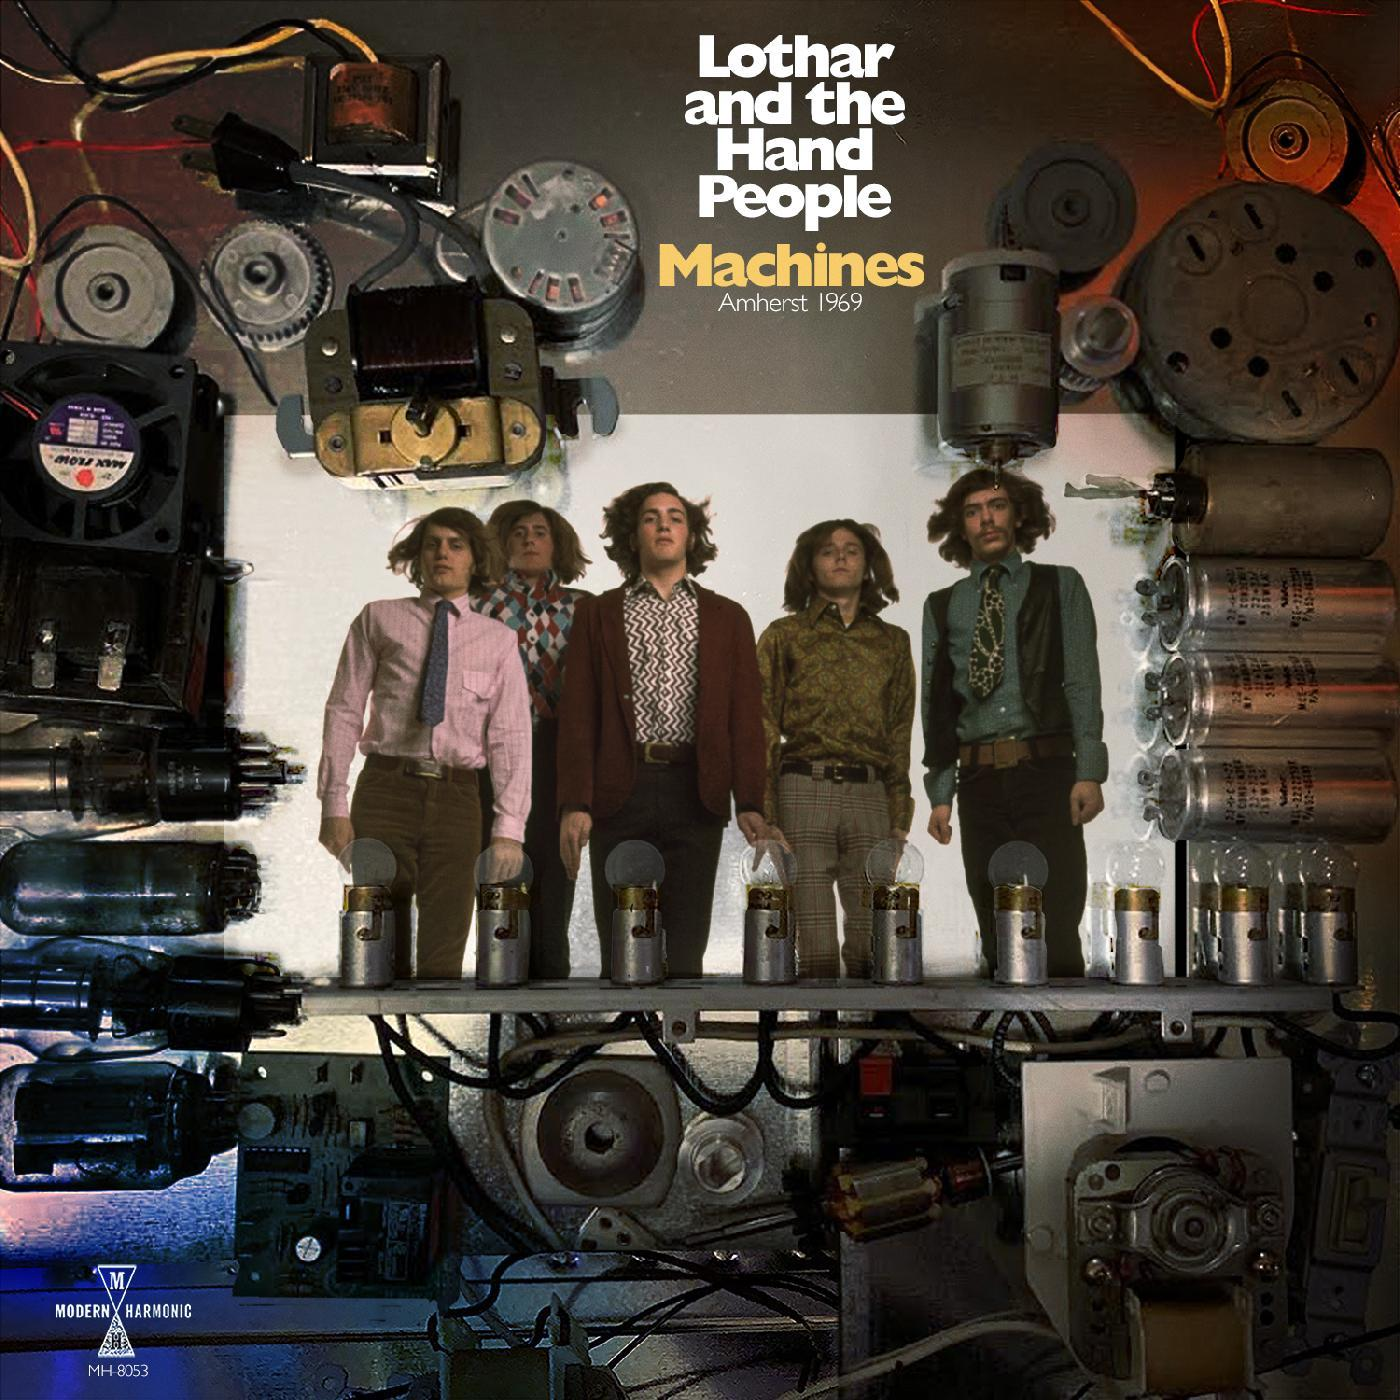 Lothar and the Hand People - Machines: Amherst 1969 [RSD Drops Aug 2020]